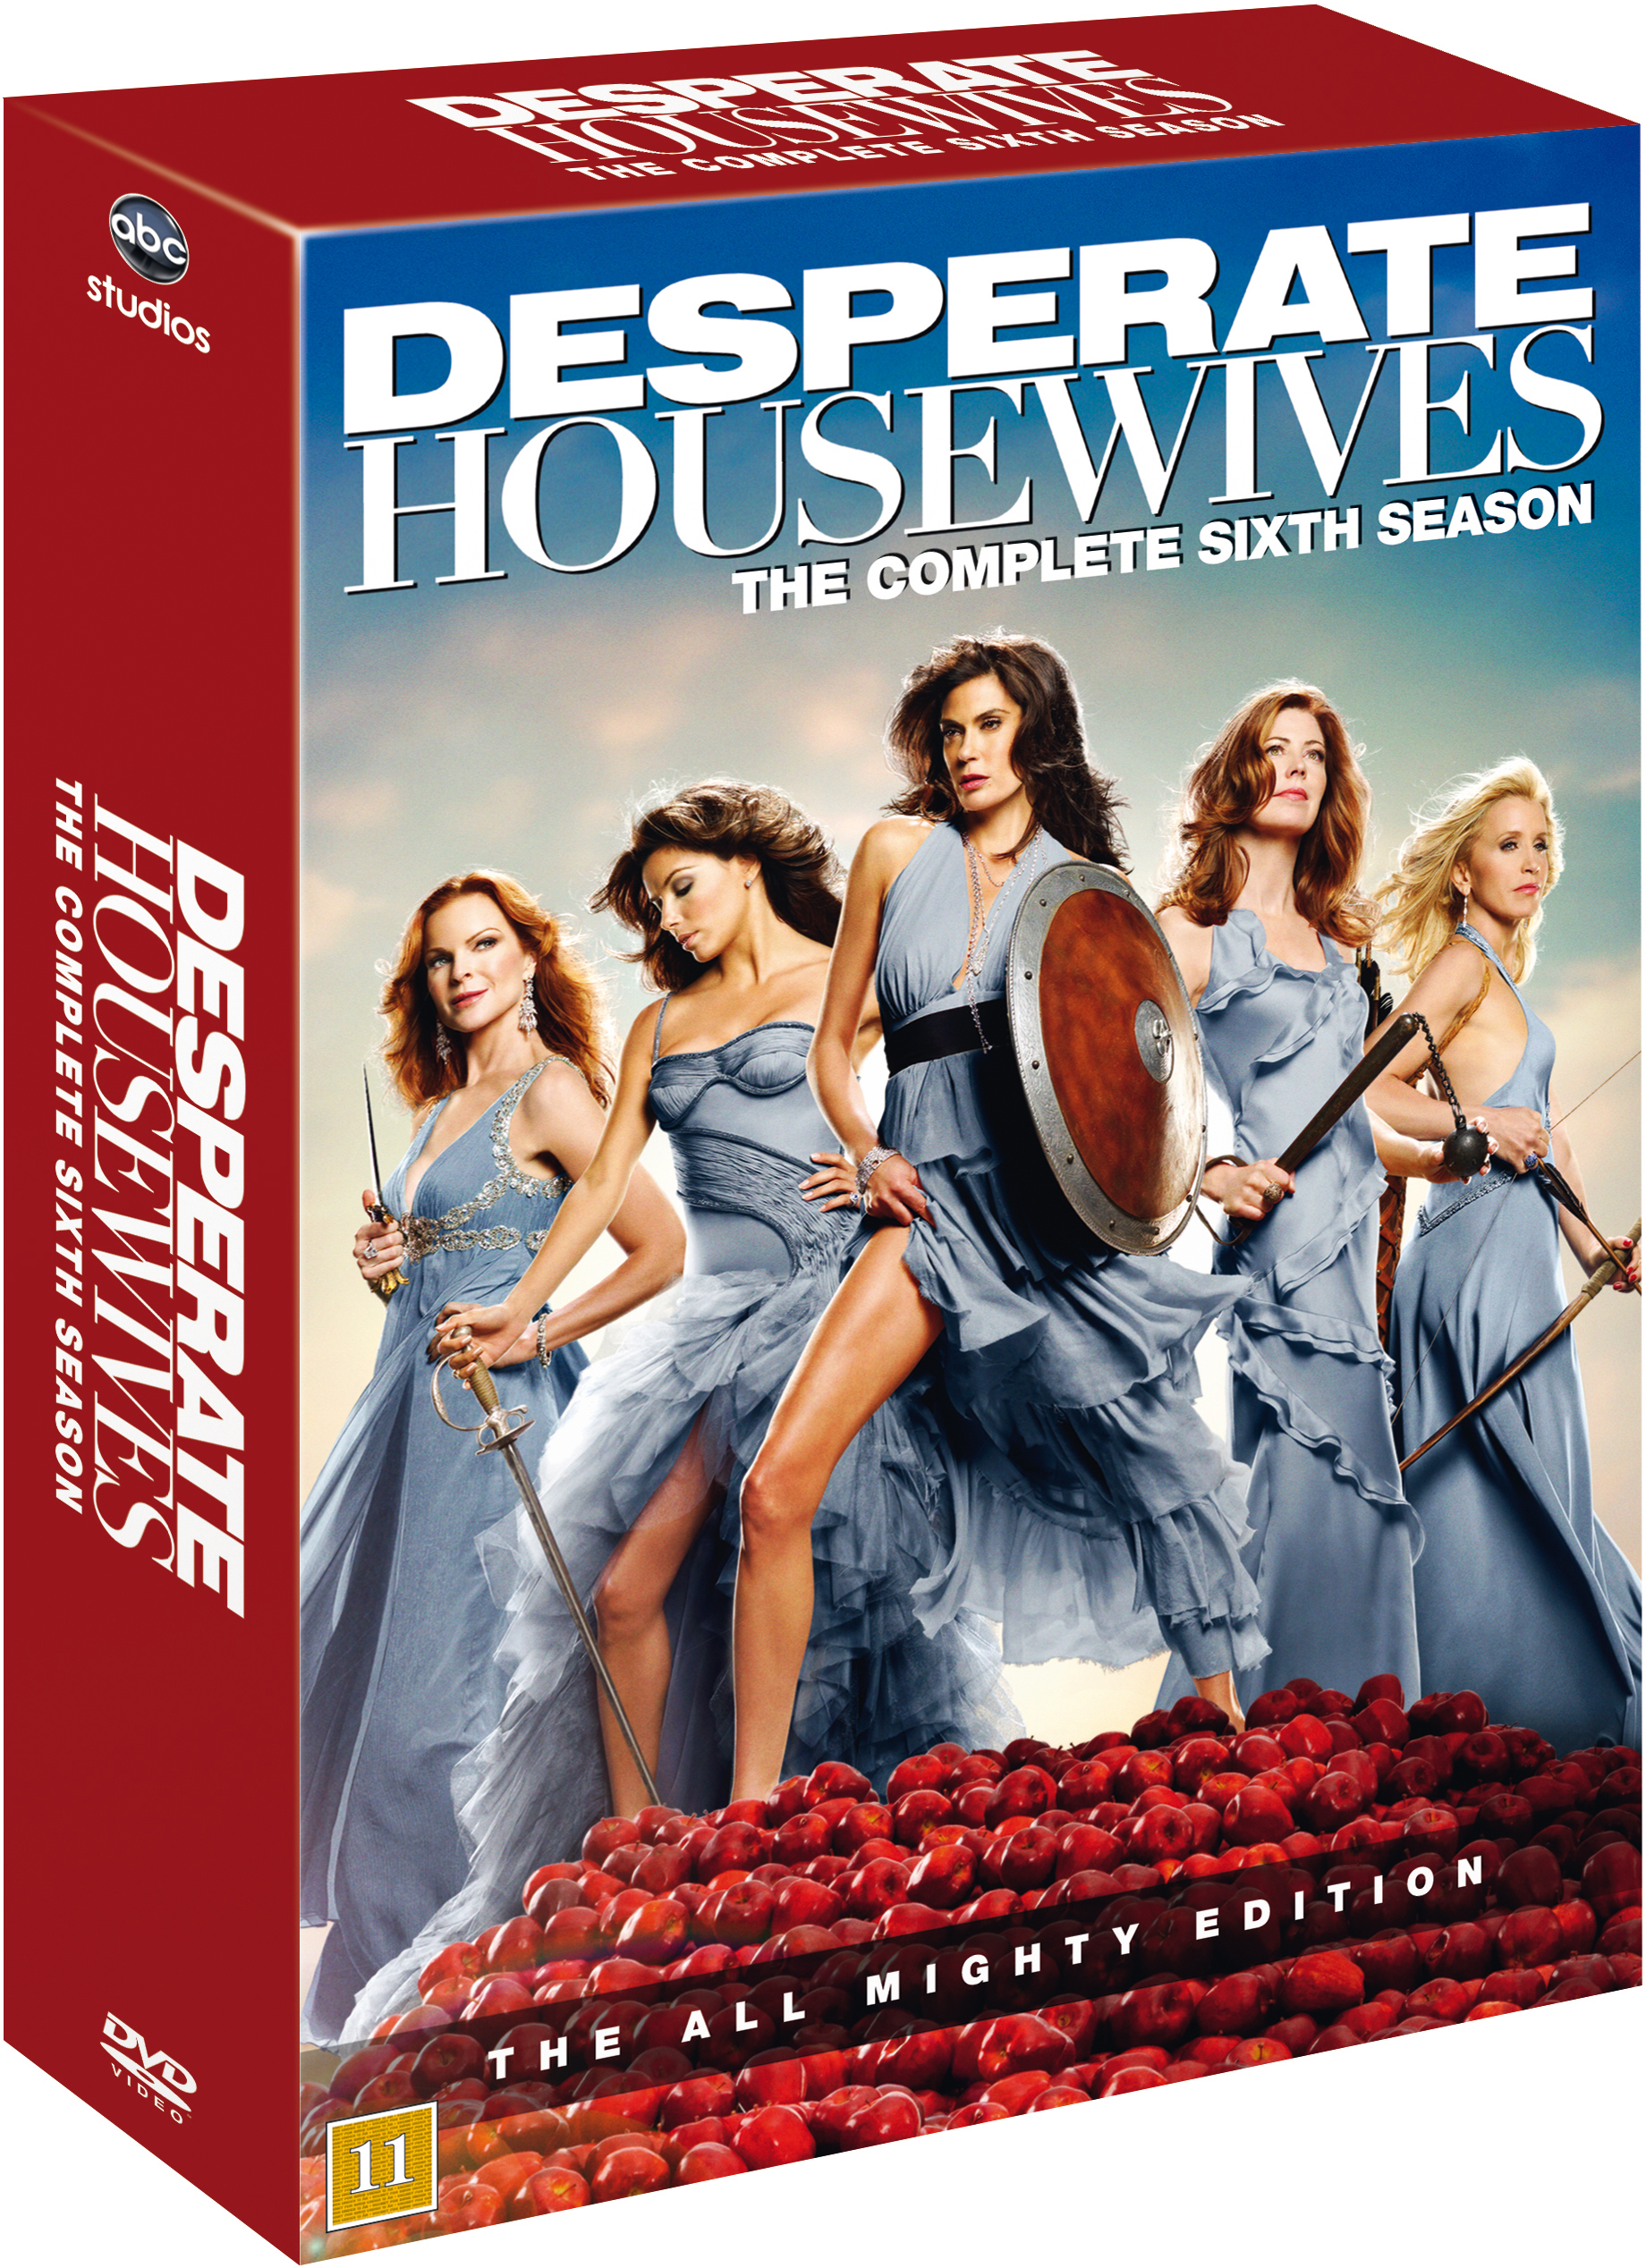 Buy Desperate Housewives Season 6 Dvd Another family with a dark past moves onto. buy desperate housewives season 6 dvd